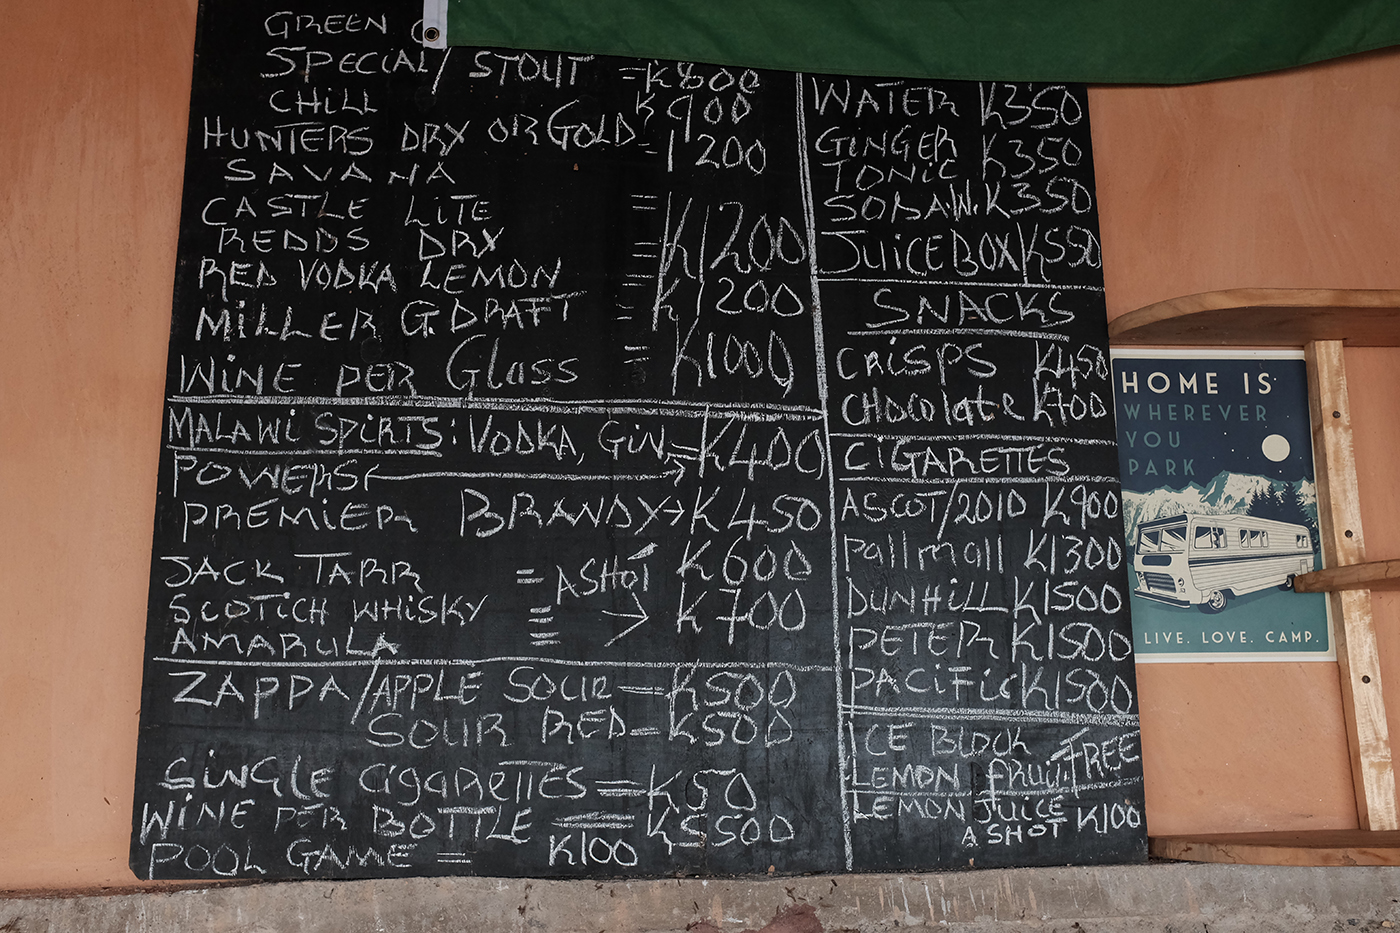 Drinks menu in Malawi